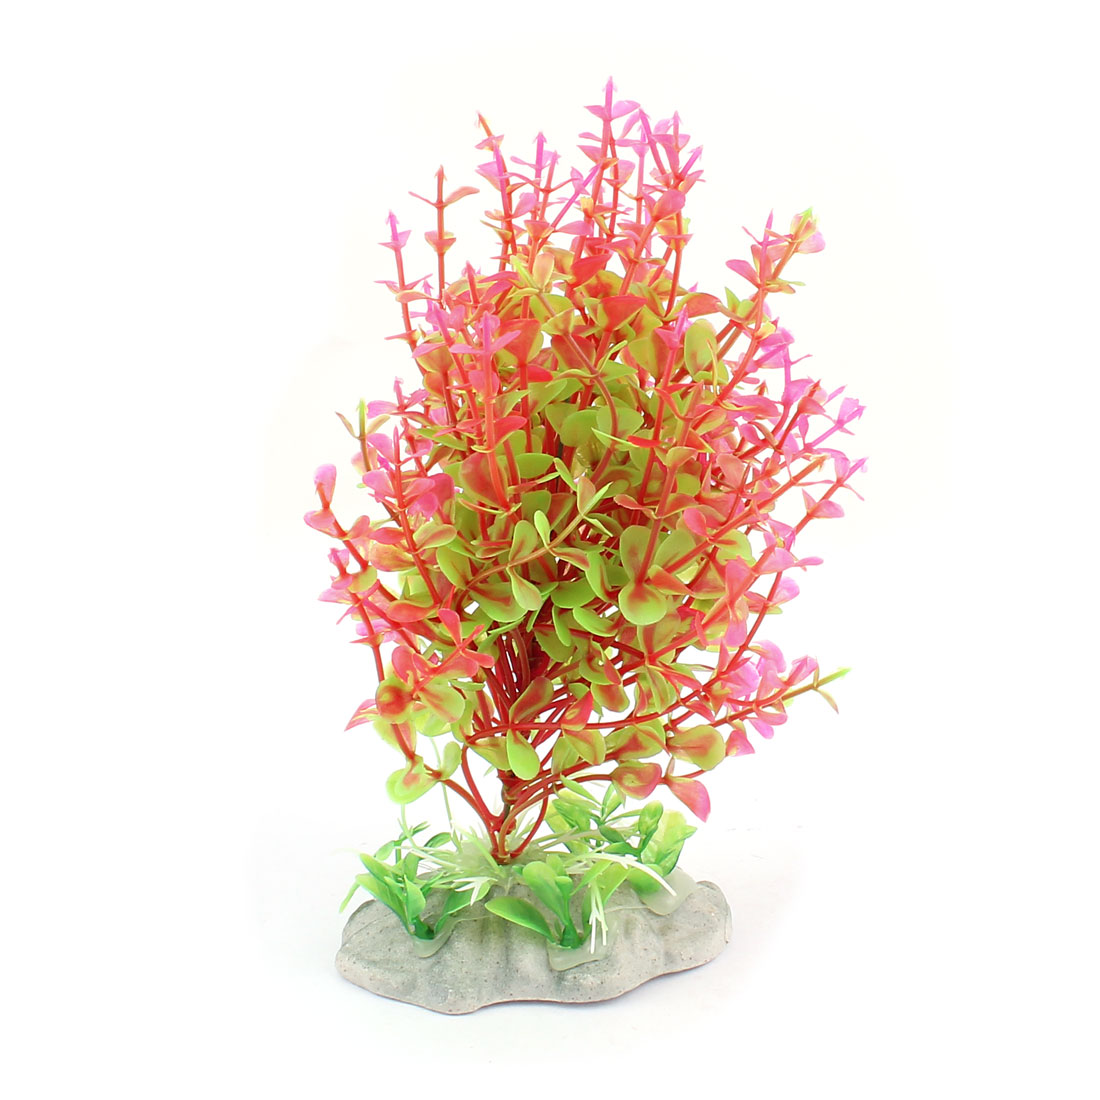 Plastic Underwater Aquatic Plant Fish Tank Aquarium Decor Pink